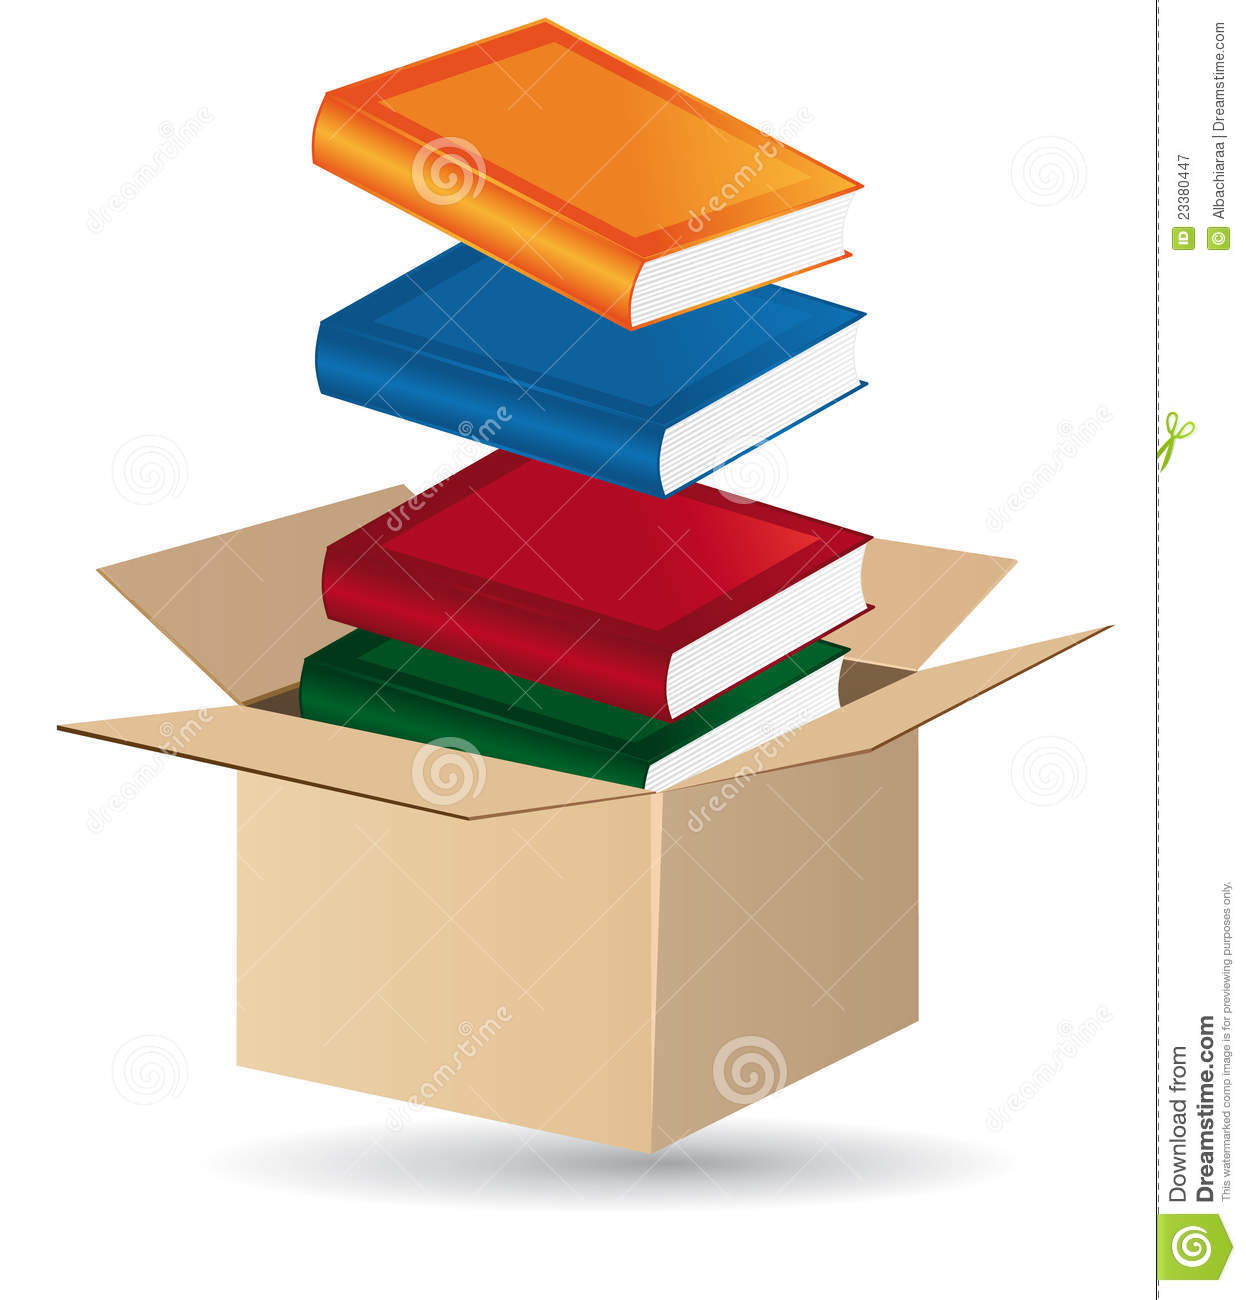 Books In A Box Royalty Free Stock Photography